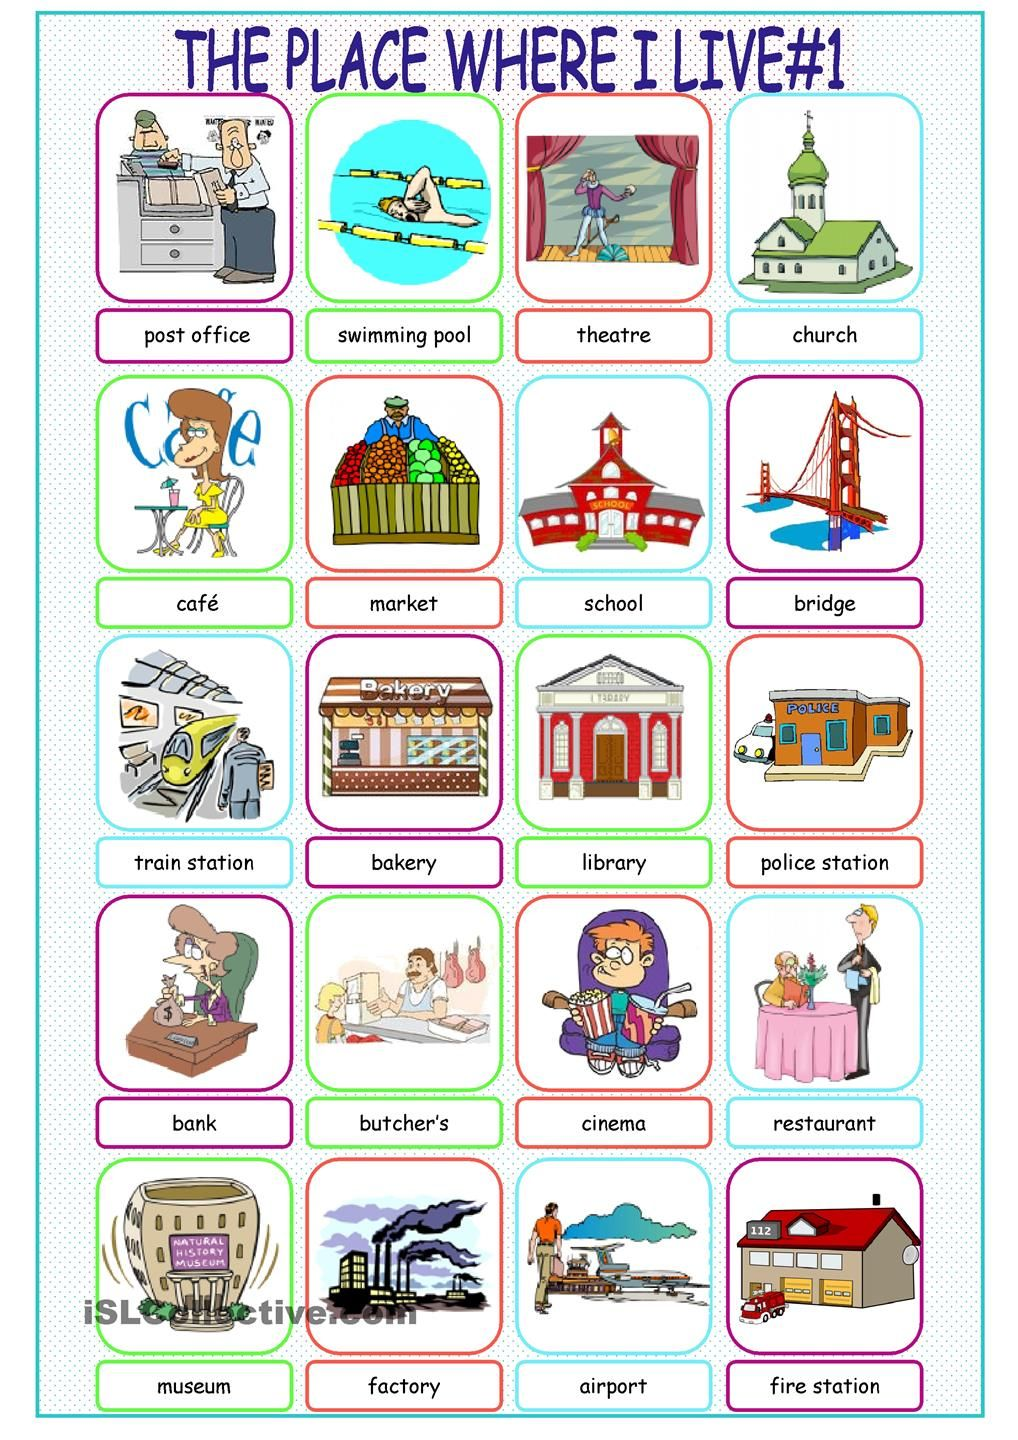 The Place Where I Live Picture Dictionary1 Tarea de ingles